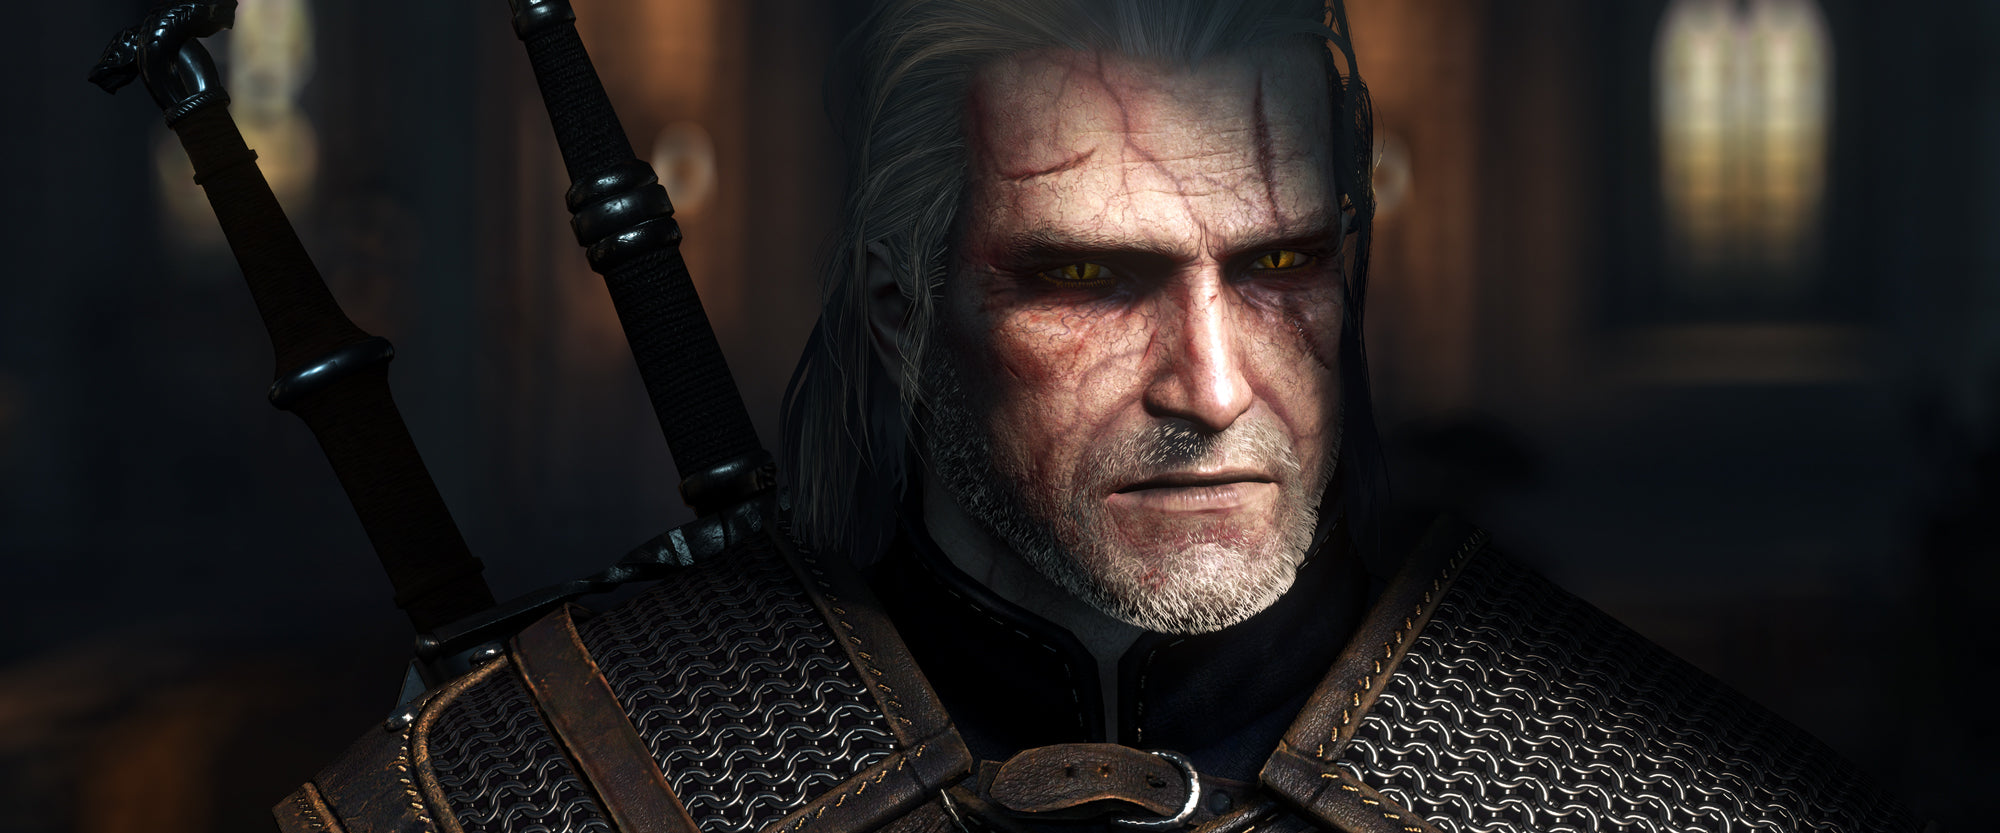 The Witcher 3: Wild Hunt shot by Jim2point0